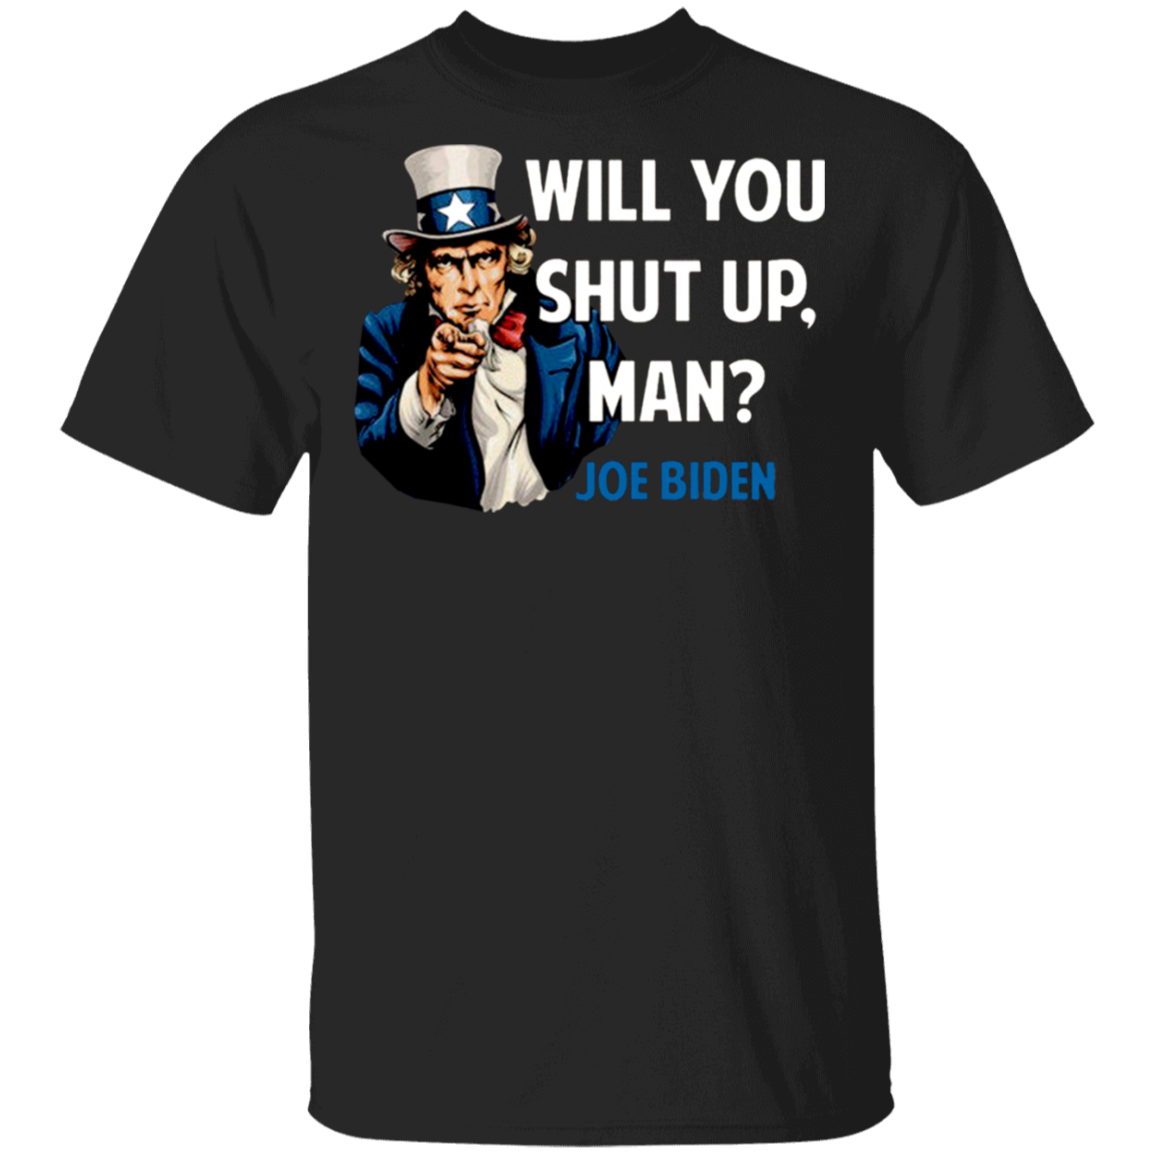 Joe Biden Will You Shut Up Man Shirt Vote For Biden T-Shirt Trump Biden Bebate Merch